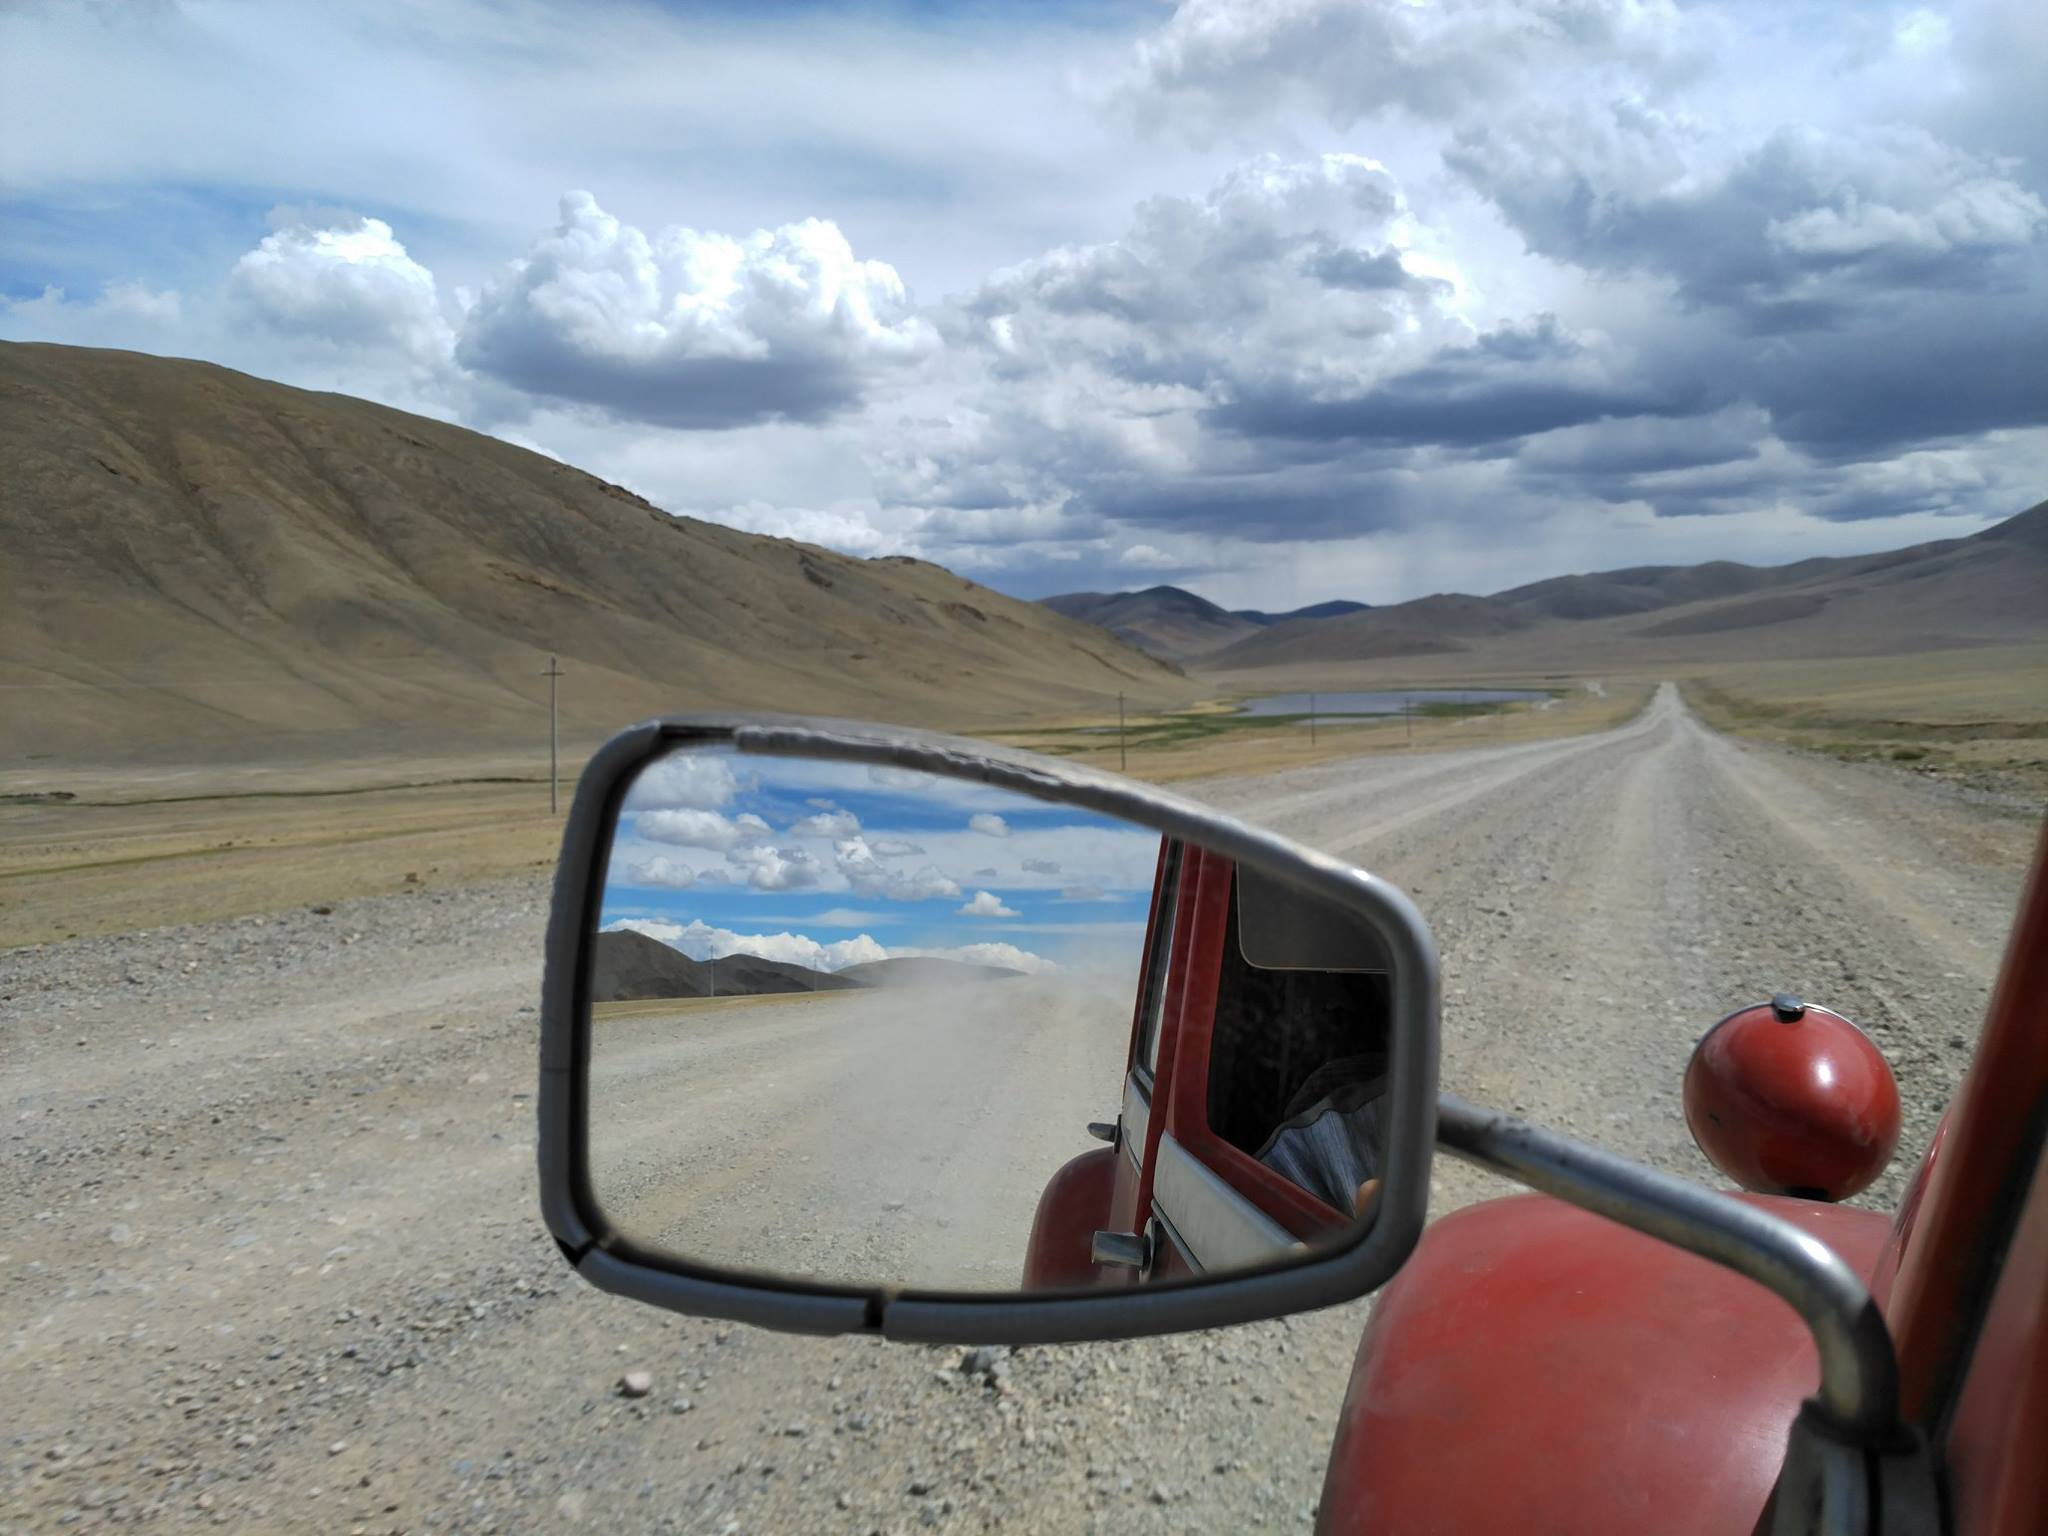 view of the road on a Citroën 2CV road trip